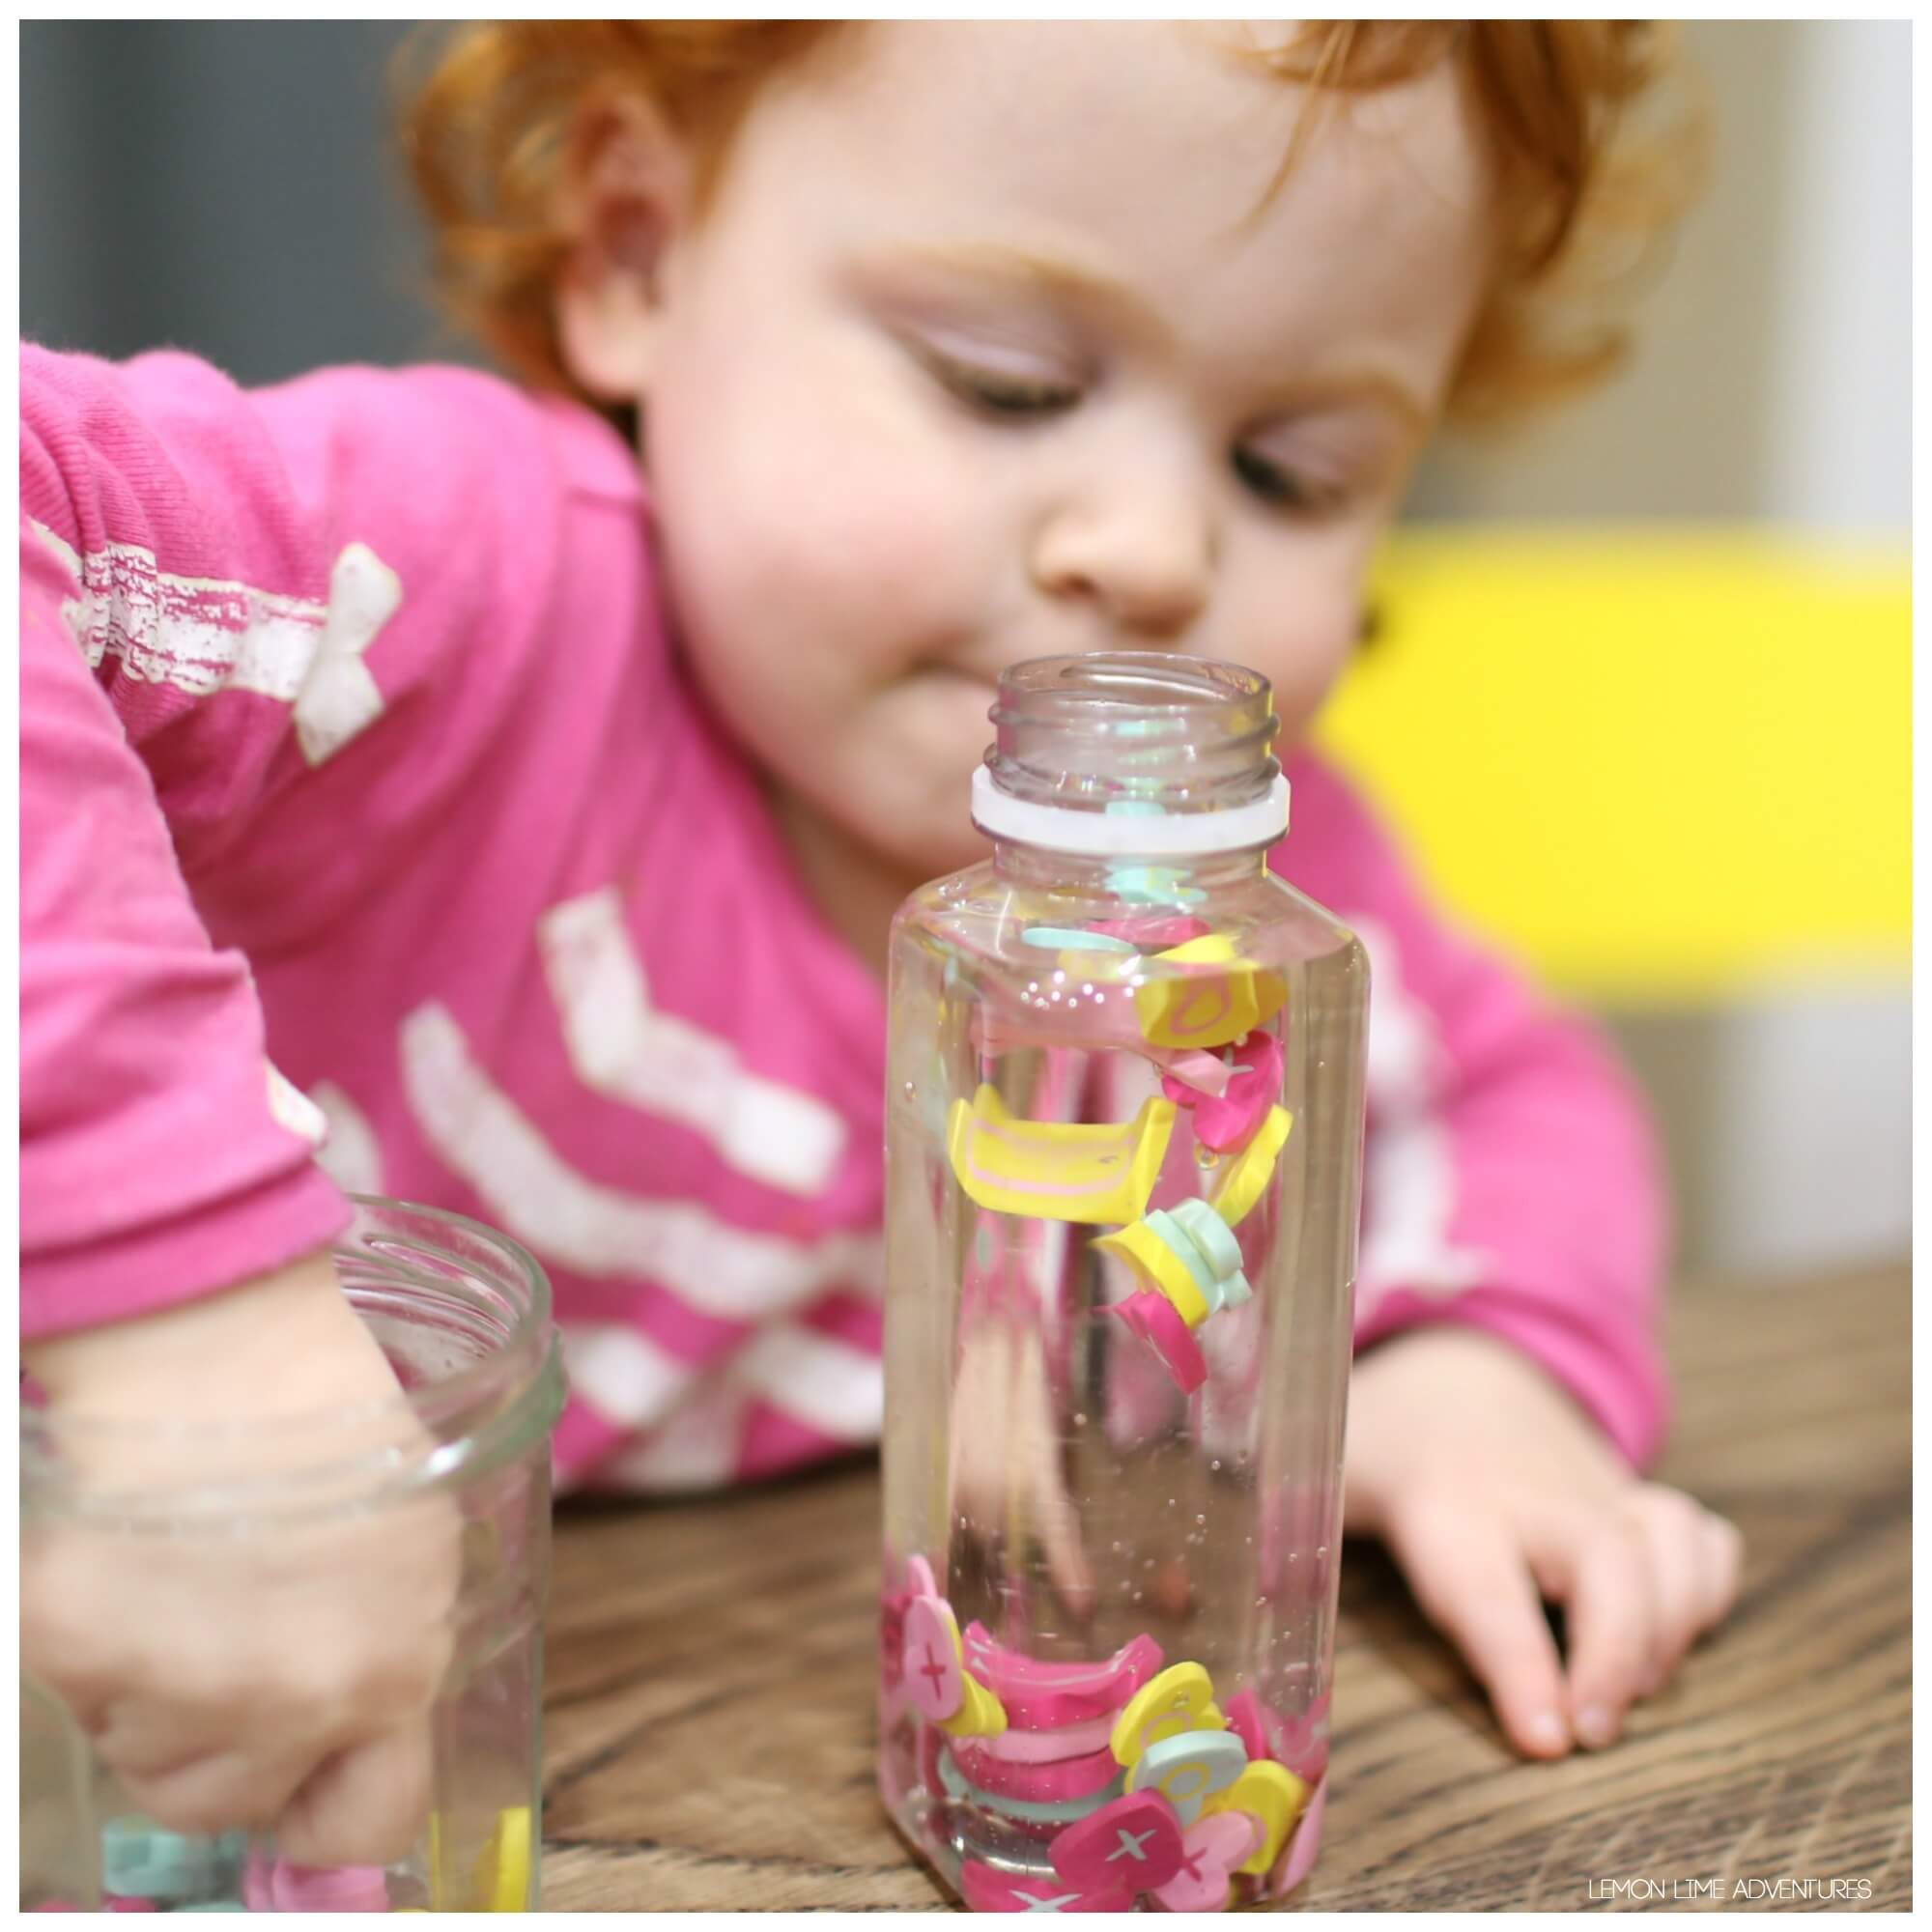 Suspended Heart Discovery Bottle Simple Sensory Bottles Discovery Bottles Sensory Bottles Bottle